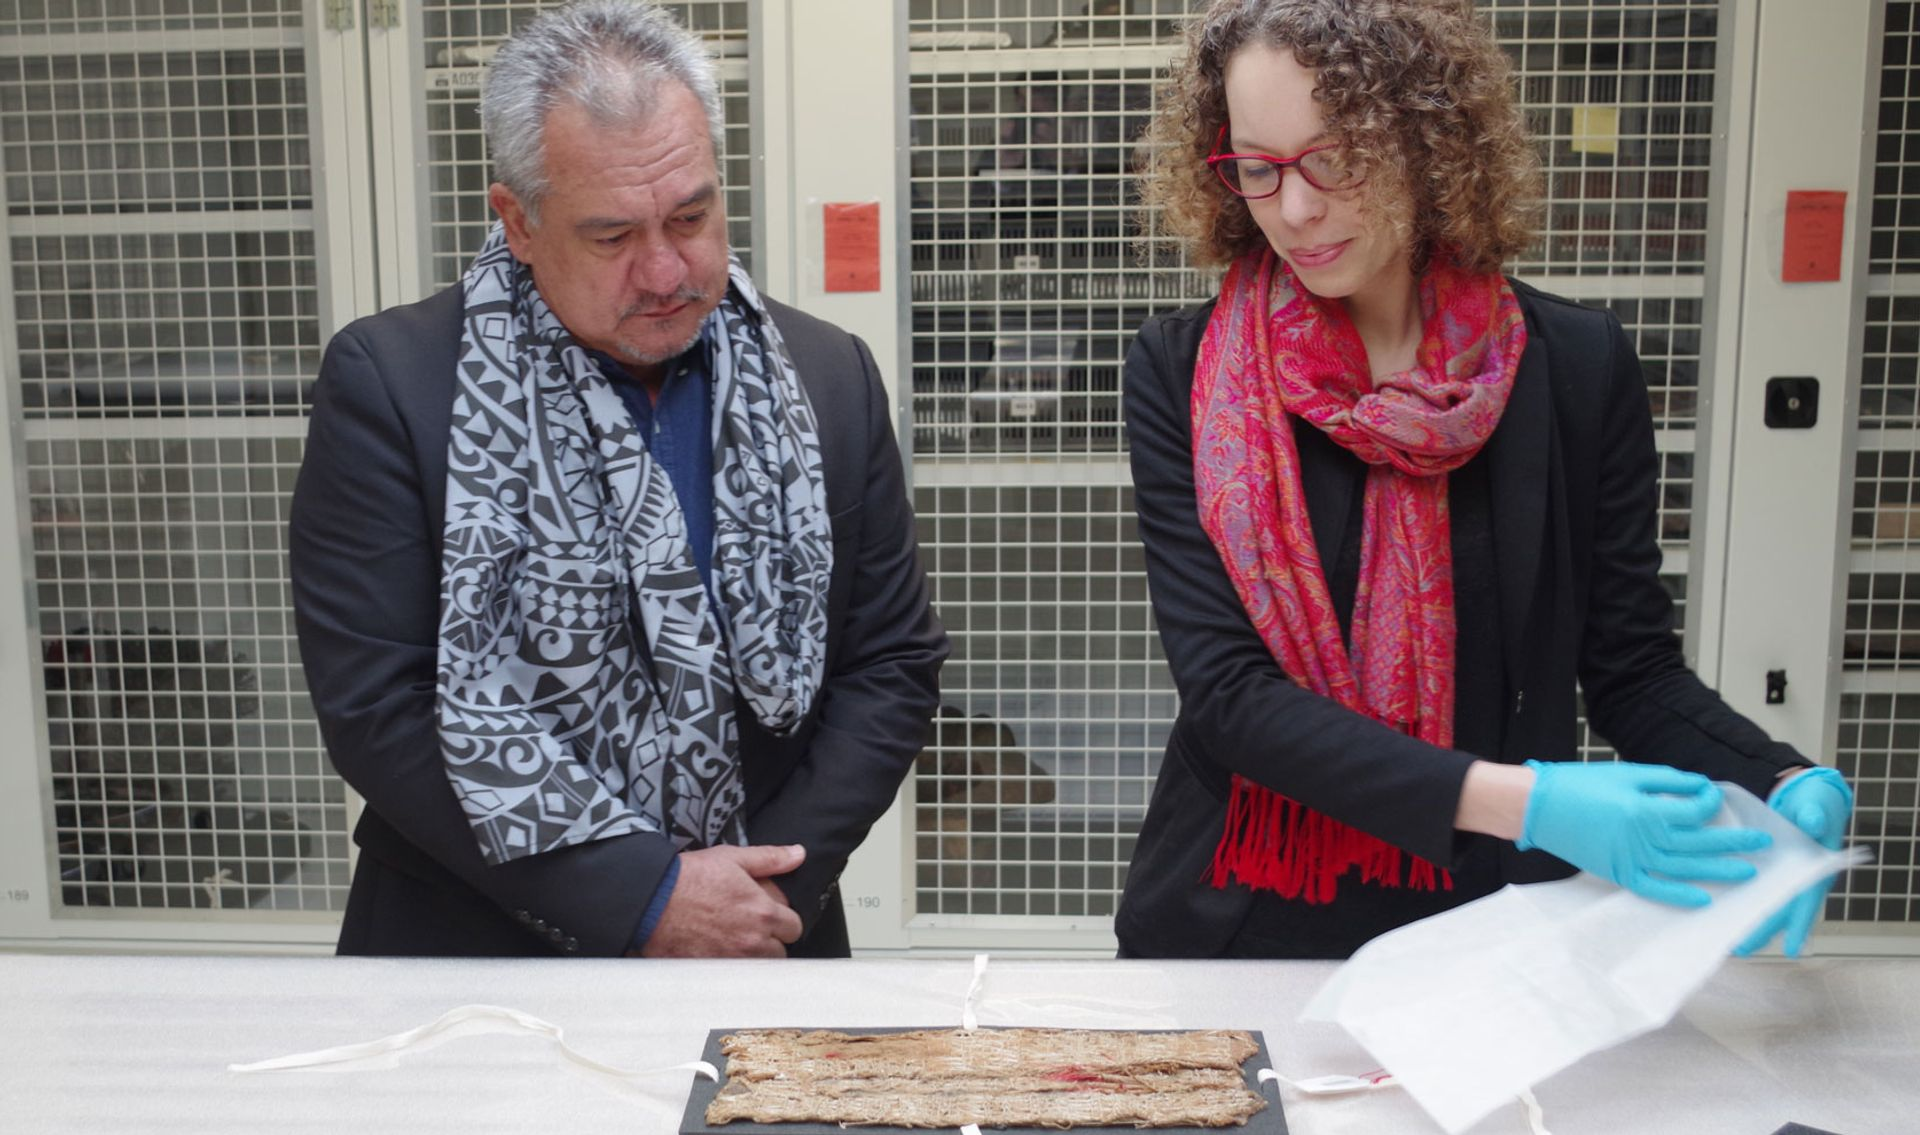 Stéphanie Leclerc-Caffarel, head of Oceanic Collections at the Musée du Quai Branly–Jacques Chirac, presents the fragment of maro 'ura to Heremoana Maamaatuiahutapu, the culture minister of French Polynesia © Gaëtan Deso